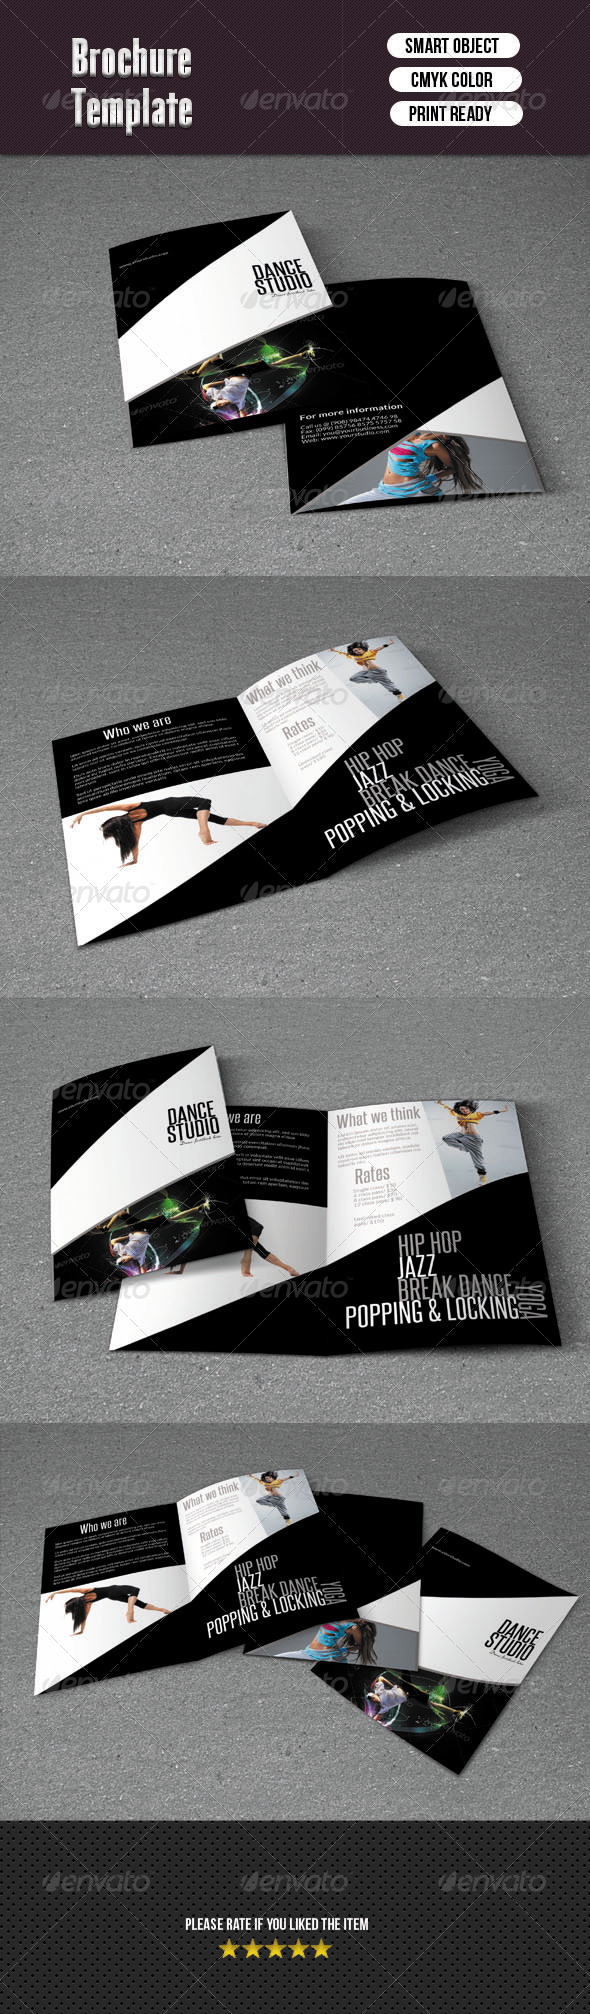 Bifold Brochure-Dance Studio - Corporate Brochures